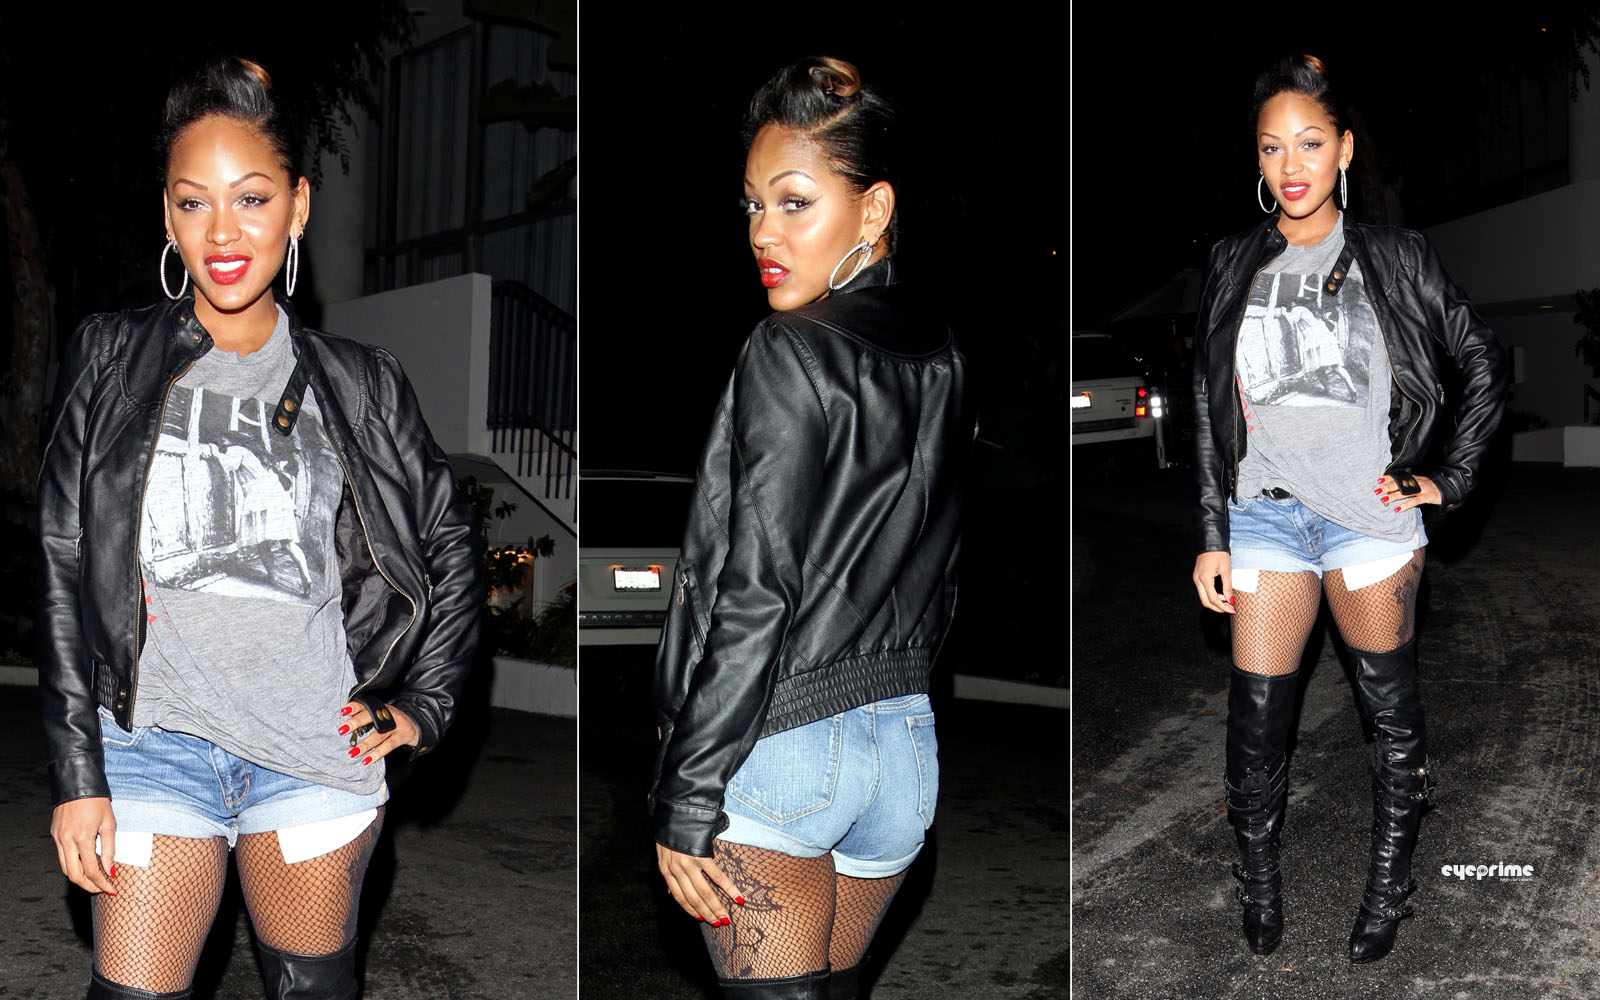 21 2010 Actress Meagan Good Showing Off Her Thigh Tattoo In Knee